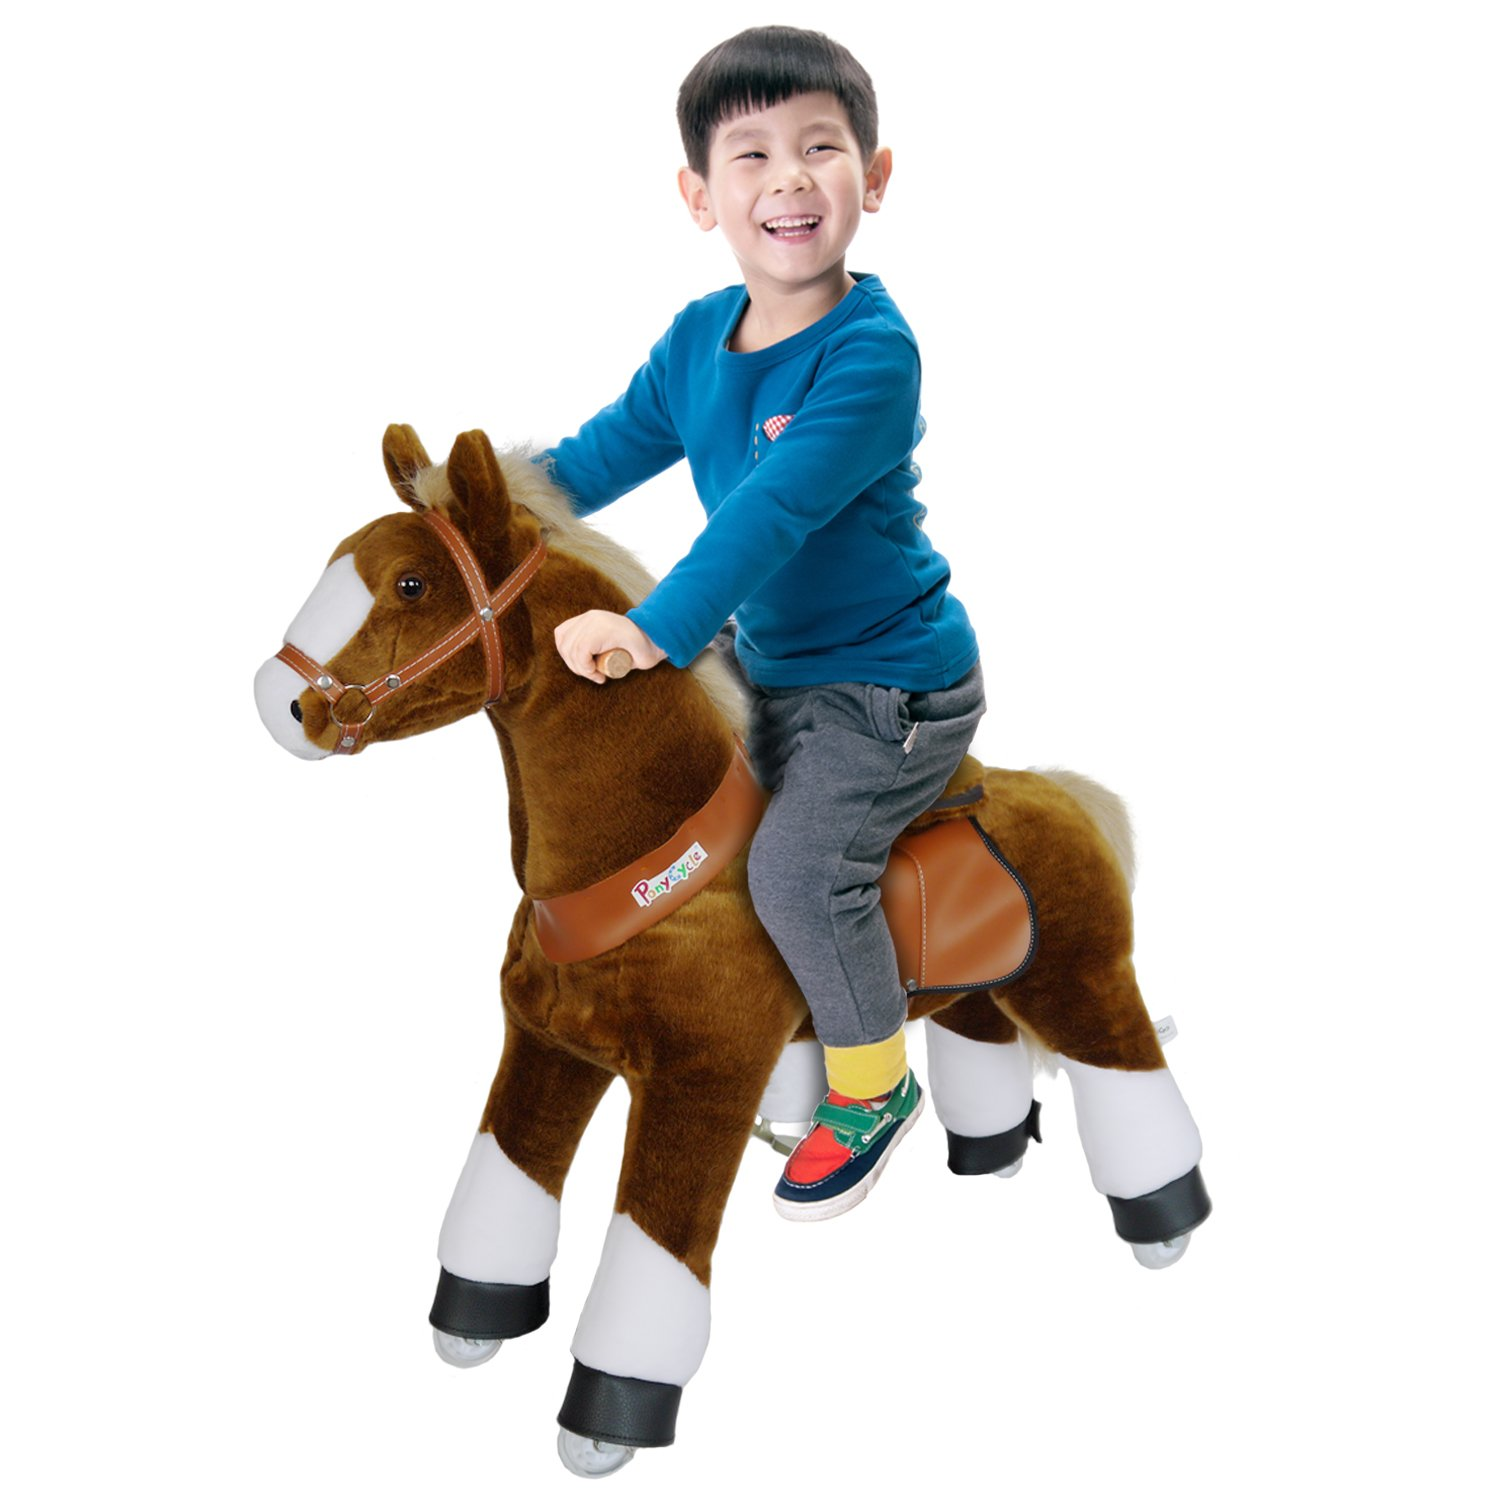 PonyCycle Official Ride-On Horse No Battery No Electricity Mechanical Pony Brown with White Hoof Giddy up Pony Plush Walking Animal for Age 4-9 Years Medium Size - N4151 by PonyCycle (Image #5)